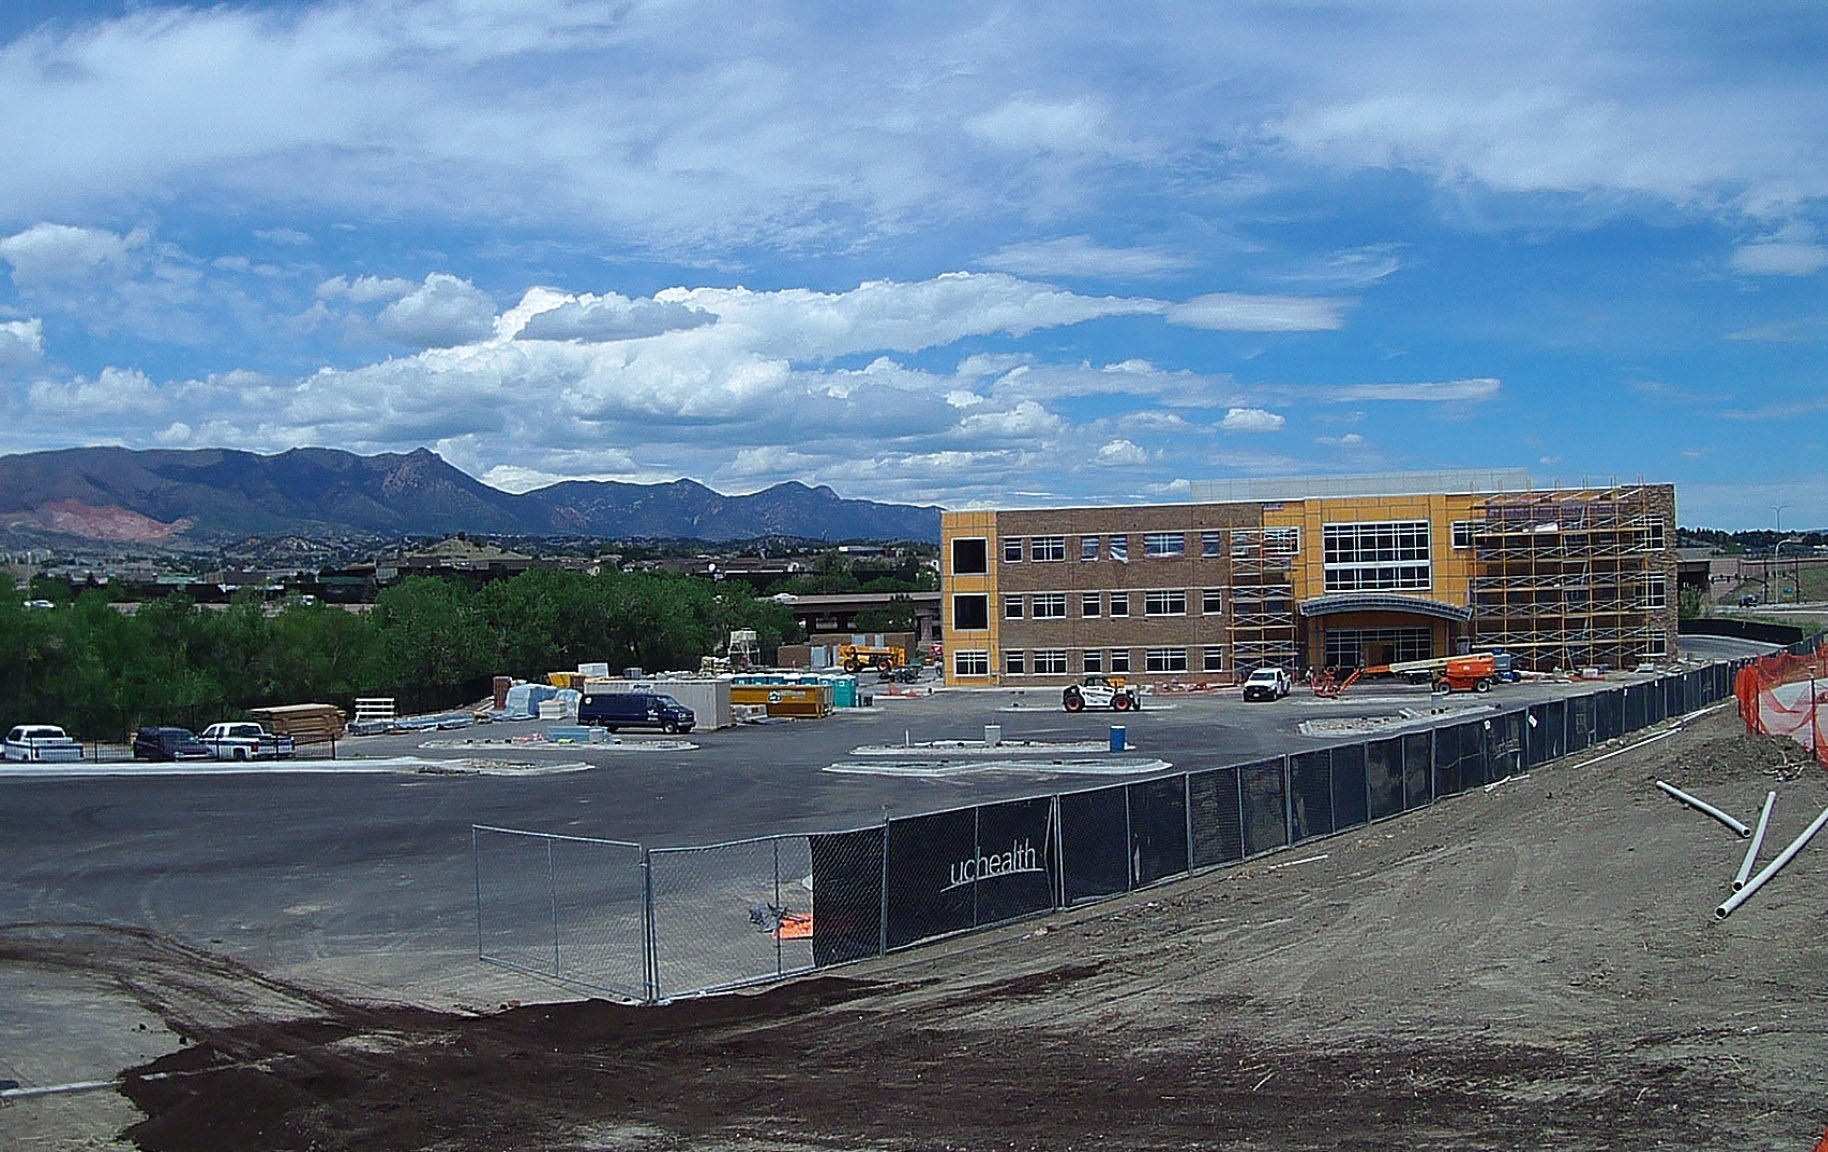 UC Health Sports Medicine Clinic is being built right next to their Grandview Hospital